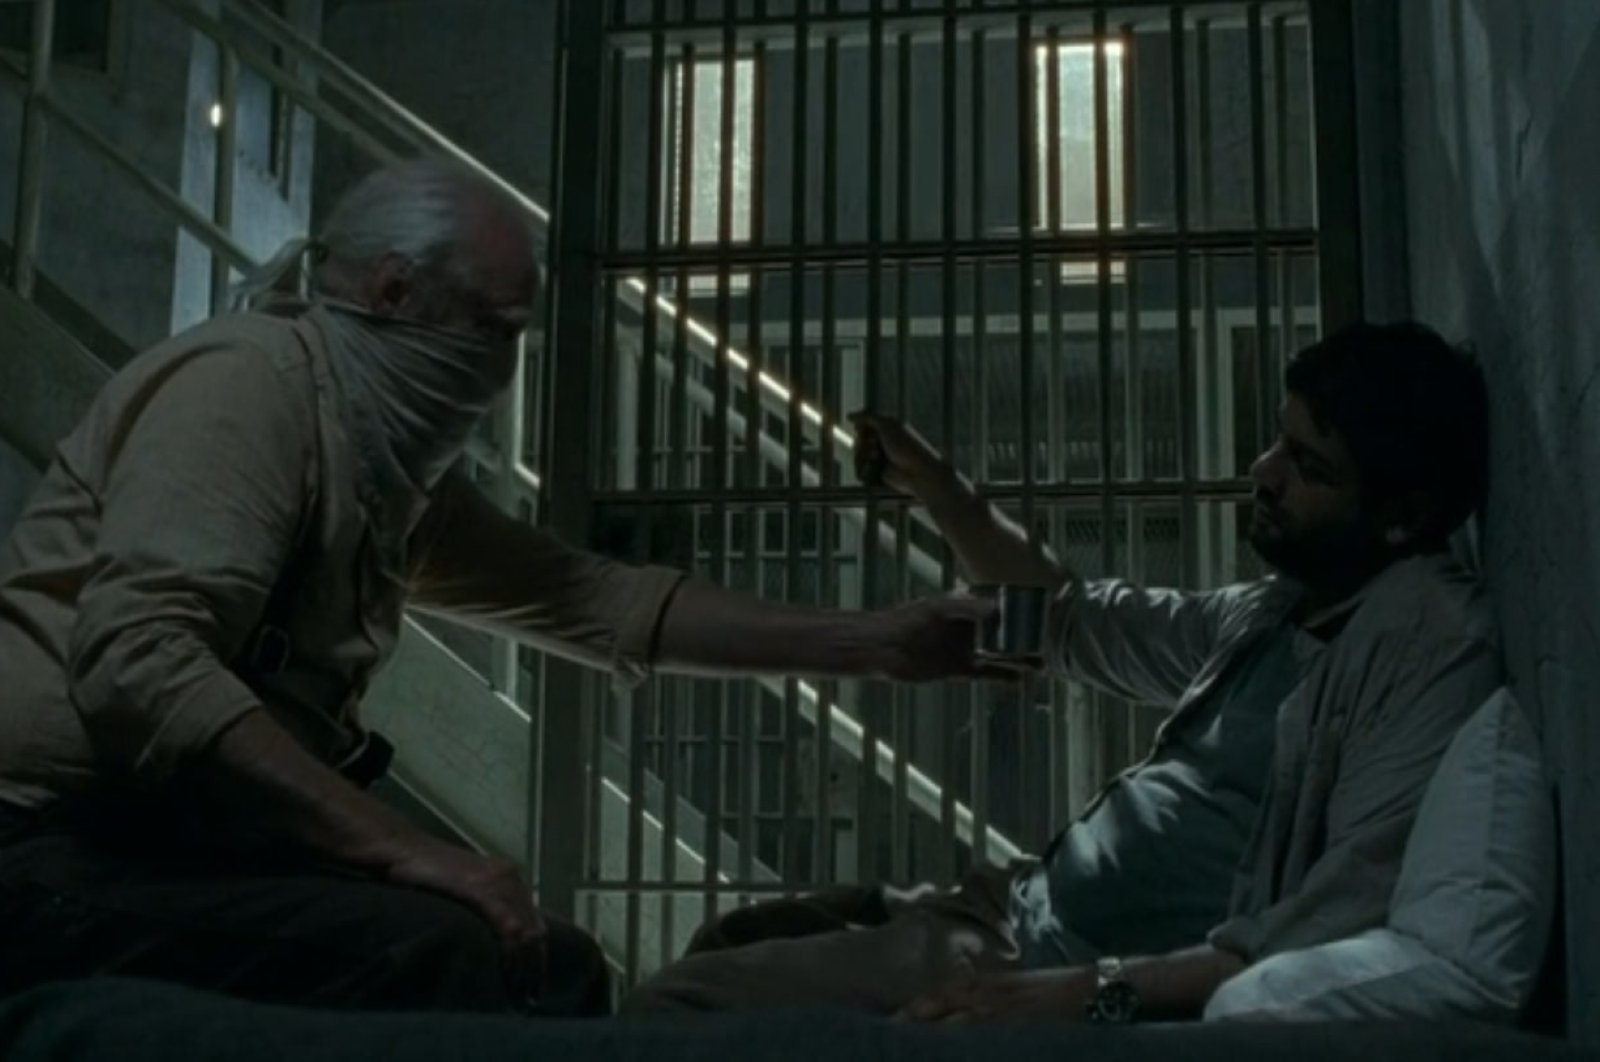 A still from season 4 episode 3 shows Hershel and Dr. Caleb.